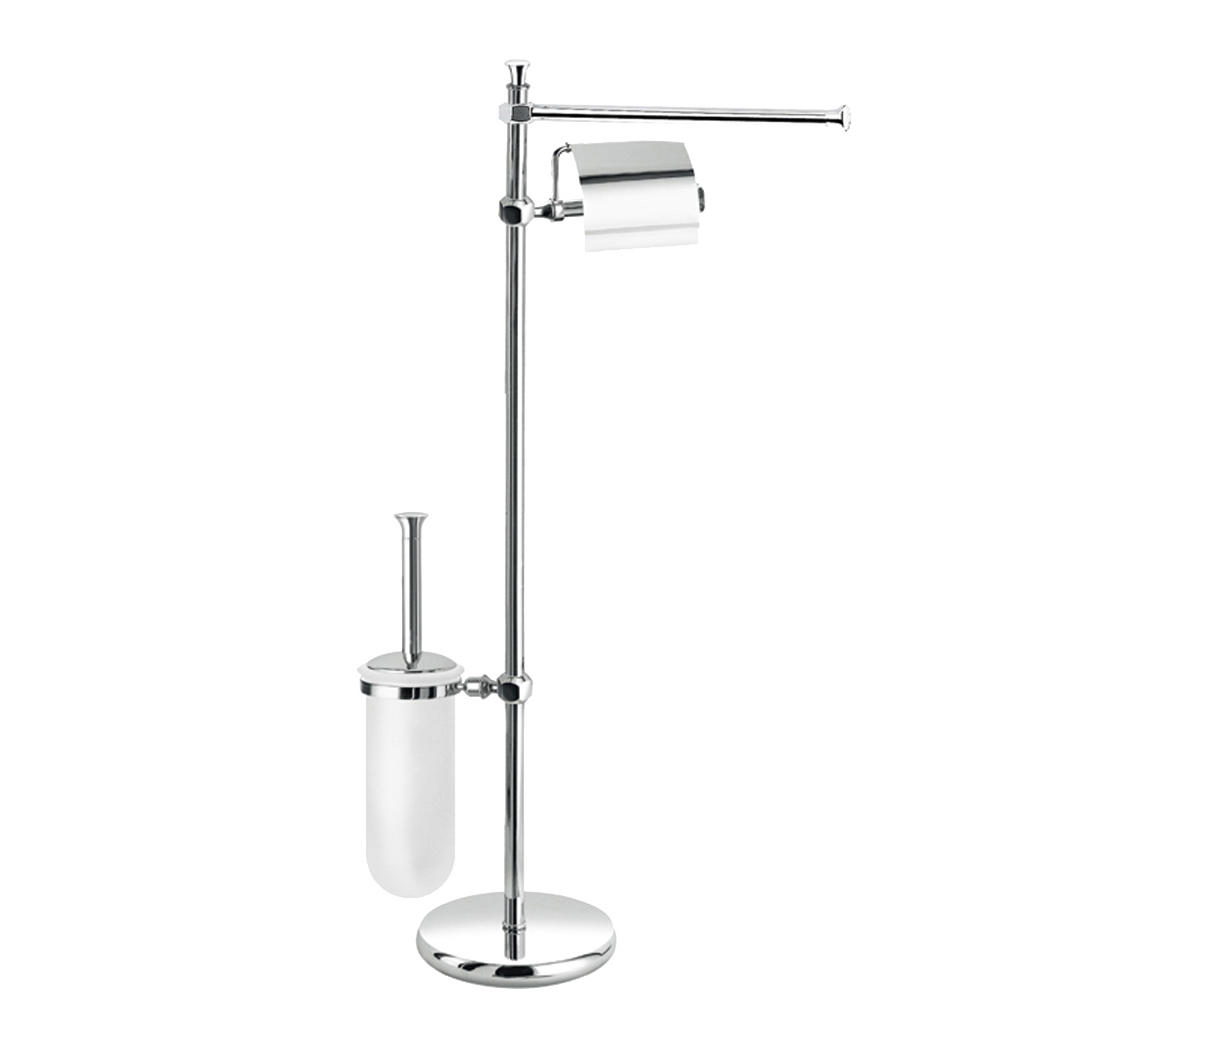 Classic Bathroom Accessories Toilet Stands From Fir Italia Architonic